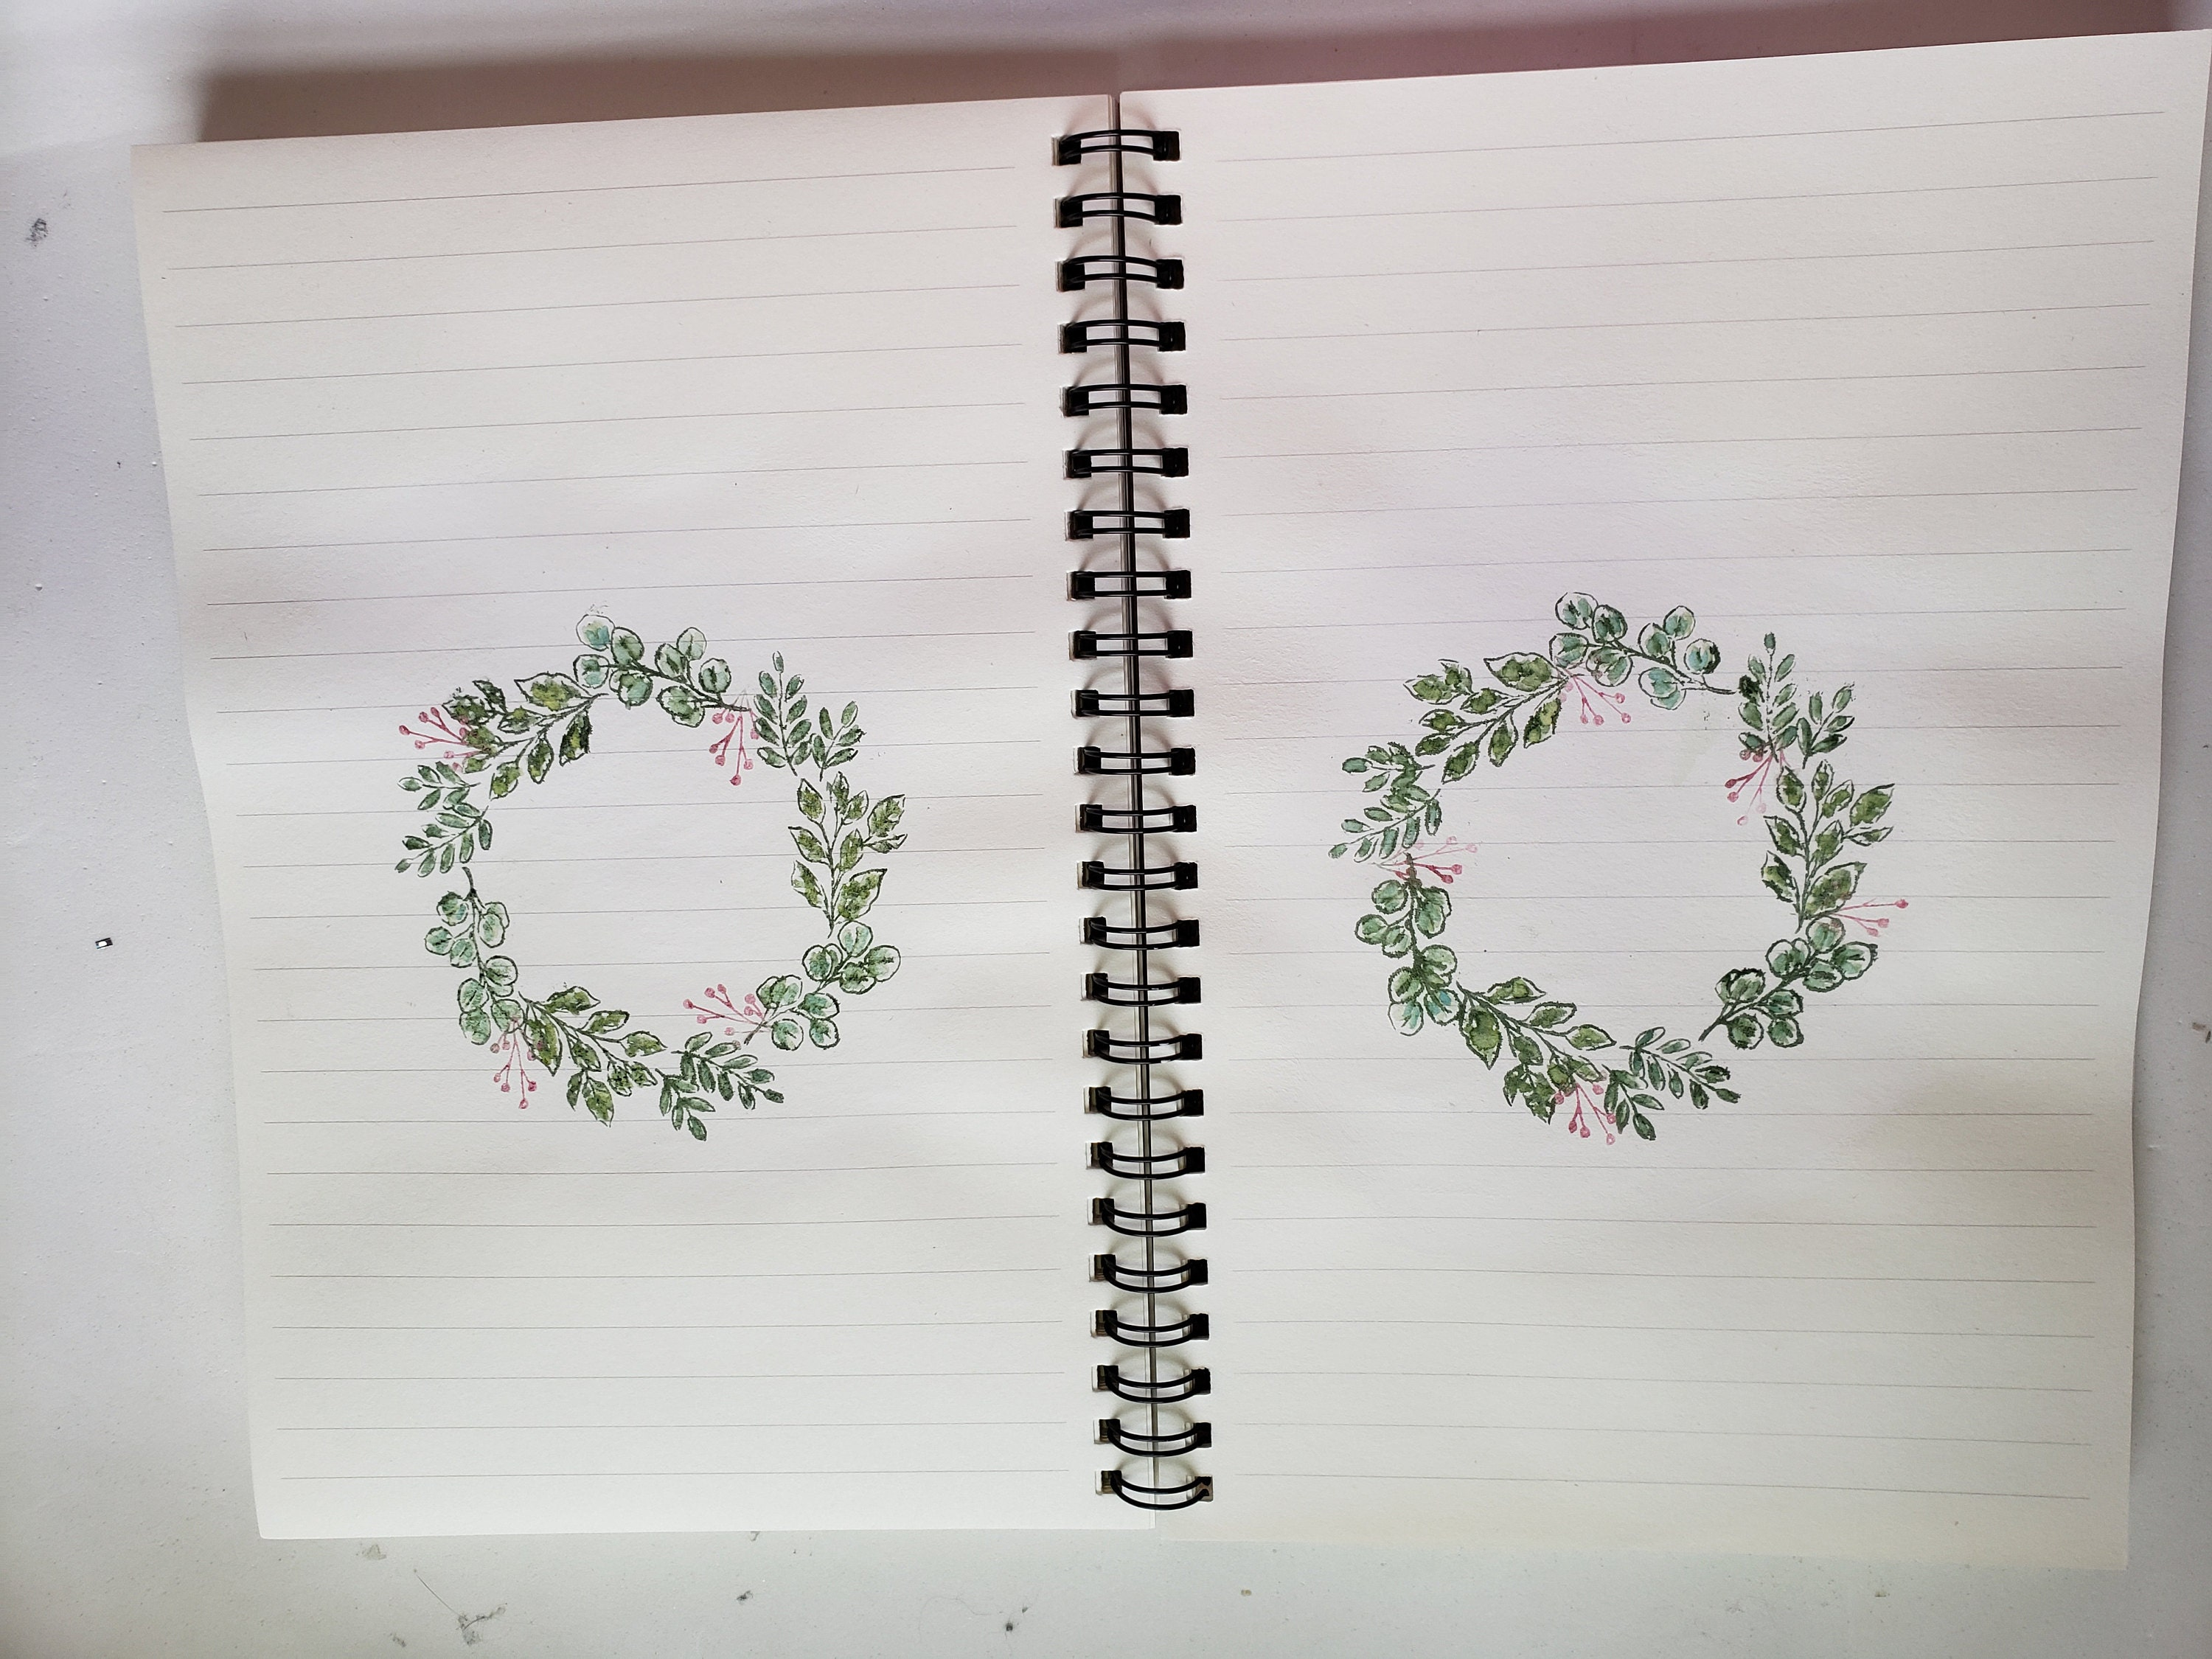 Wreath double page spread